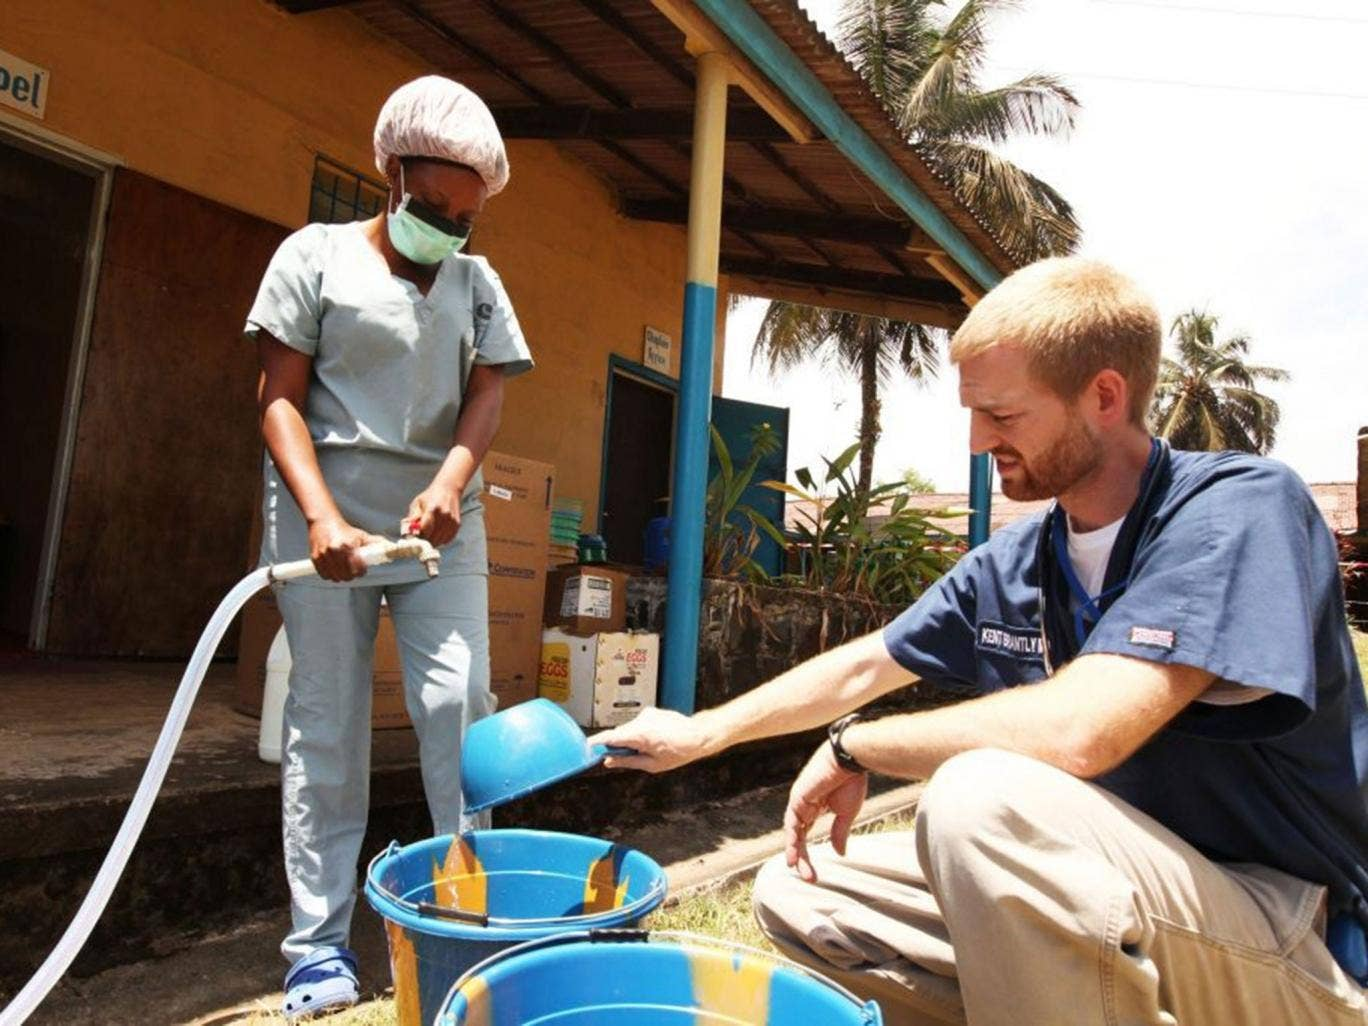 An aid worker helps with the measuring out the disinfectant